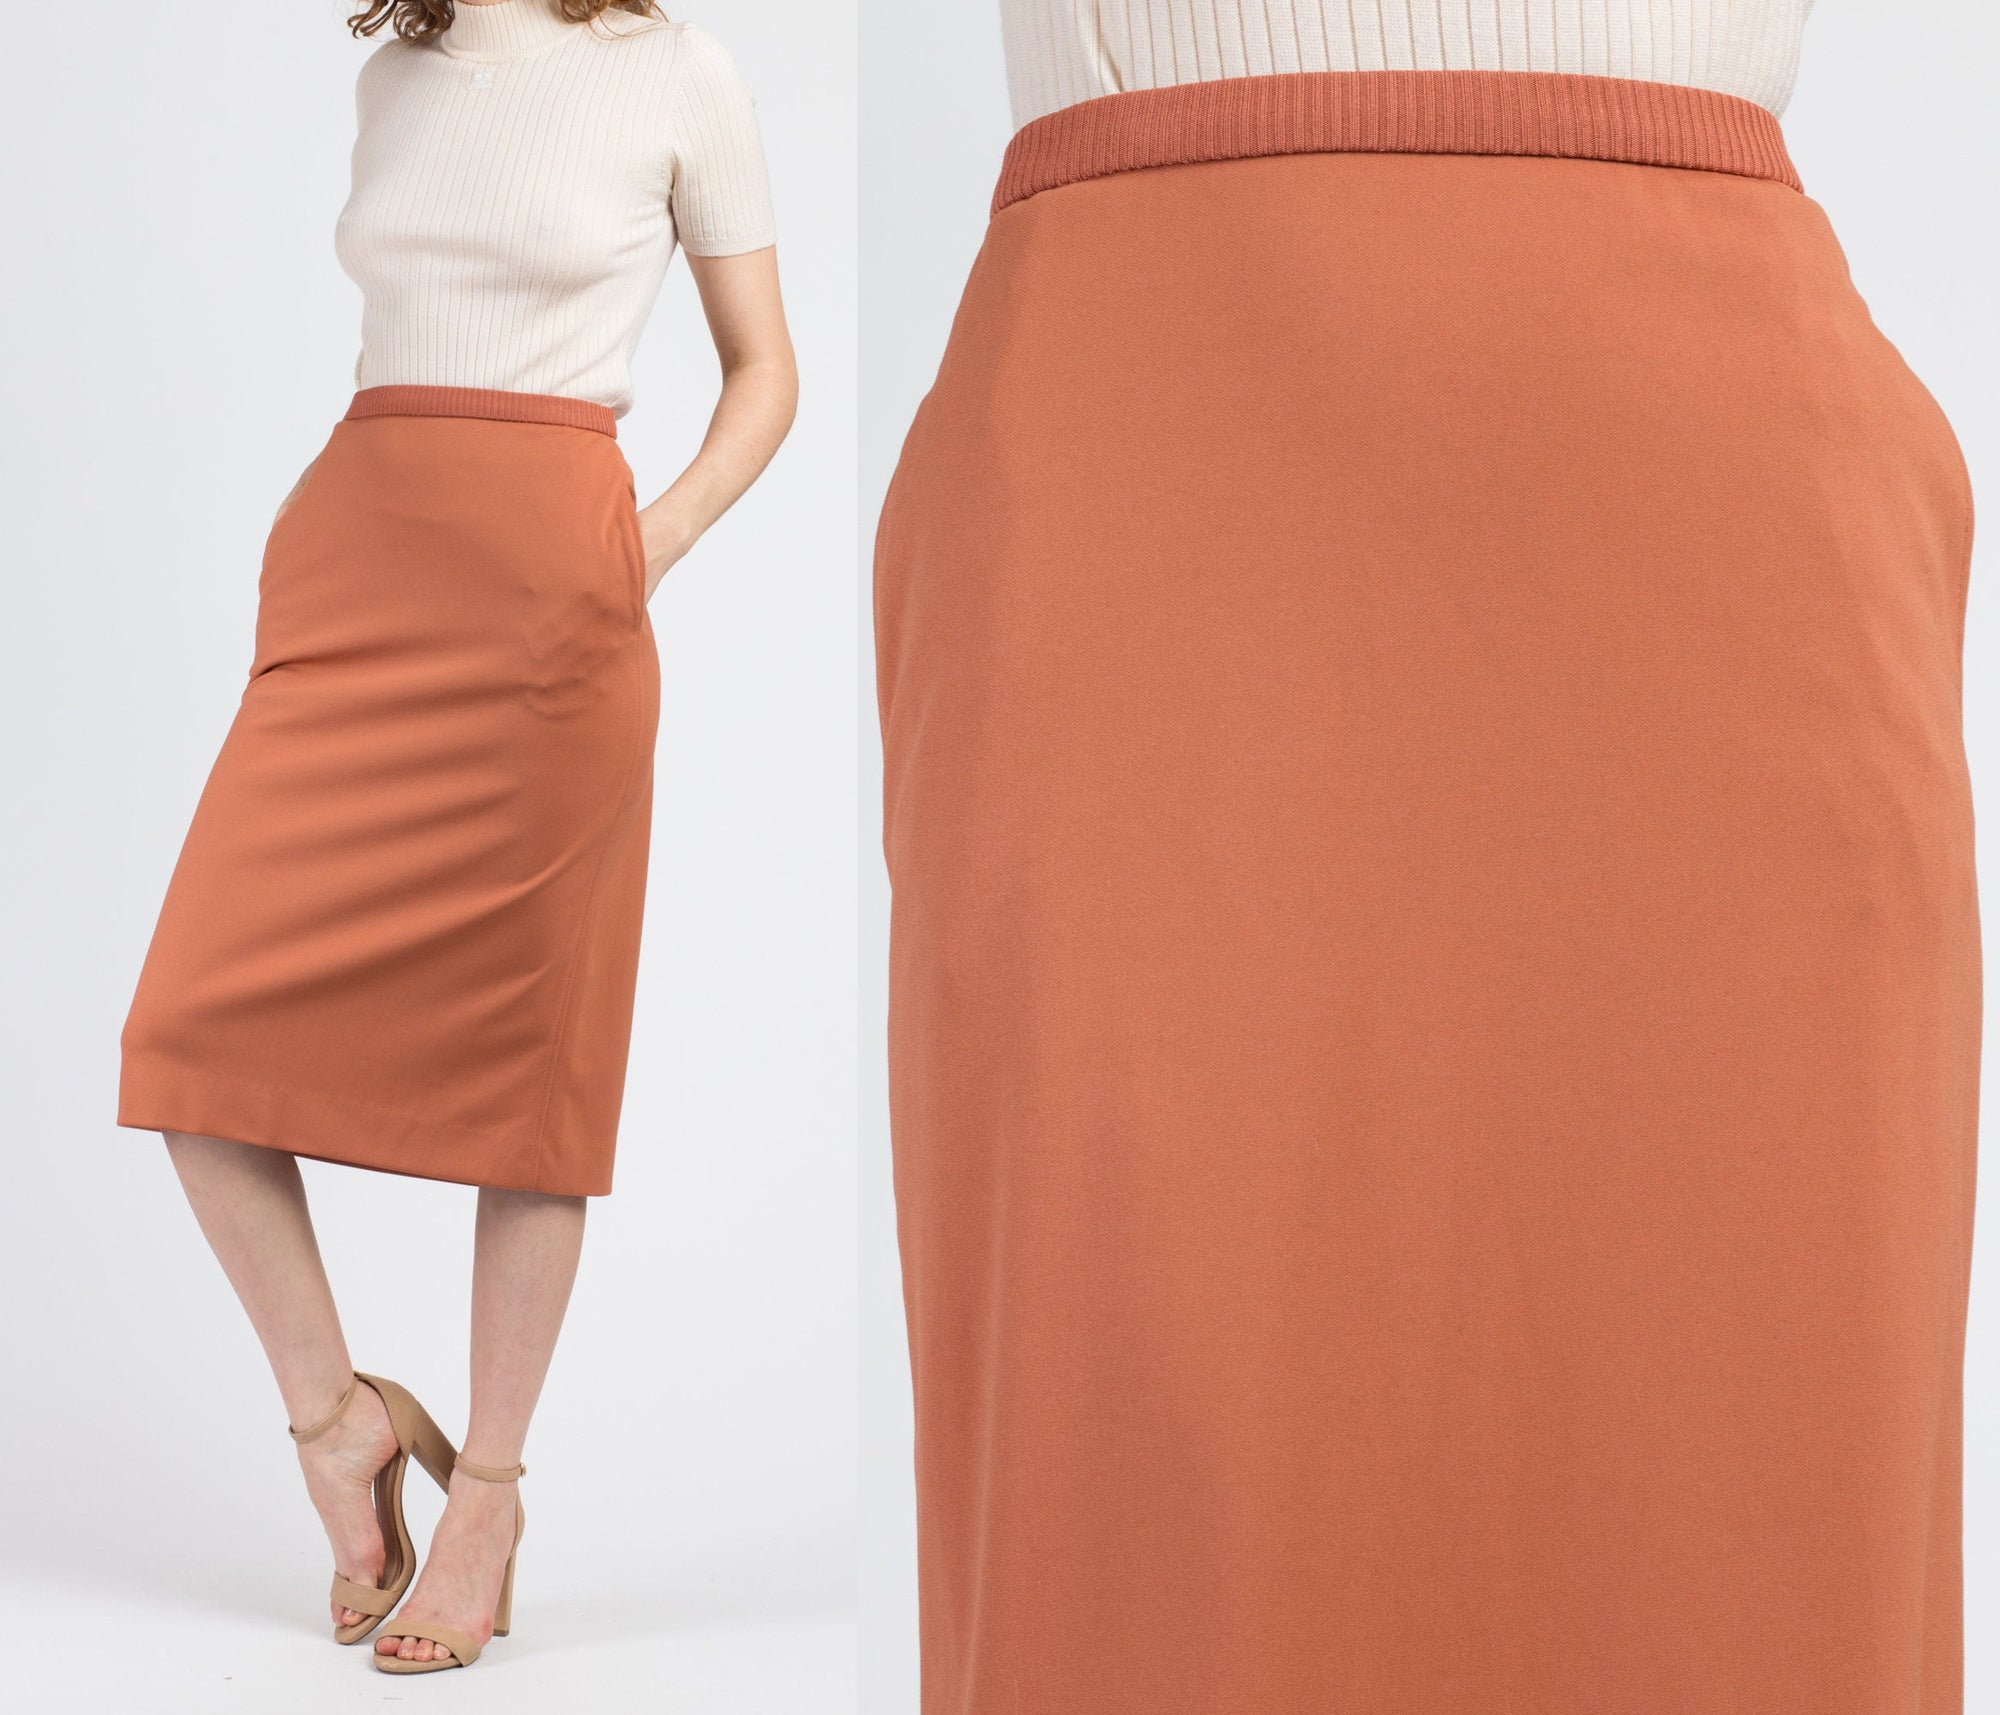 Vintage Givenchy Sport Minimalist Burnt Sienna Skirt - Small